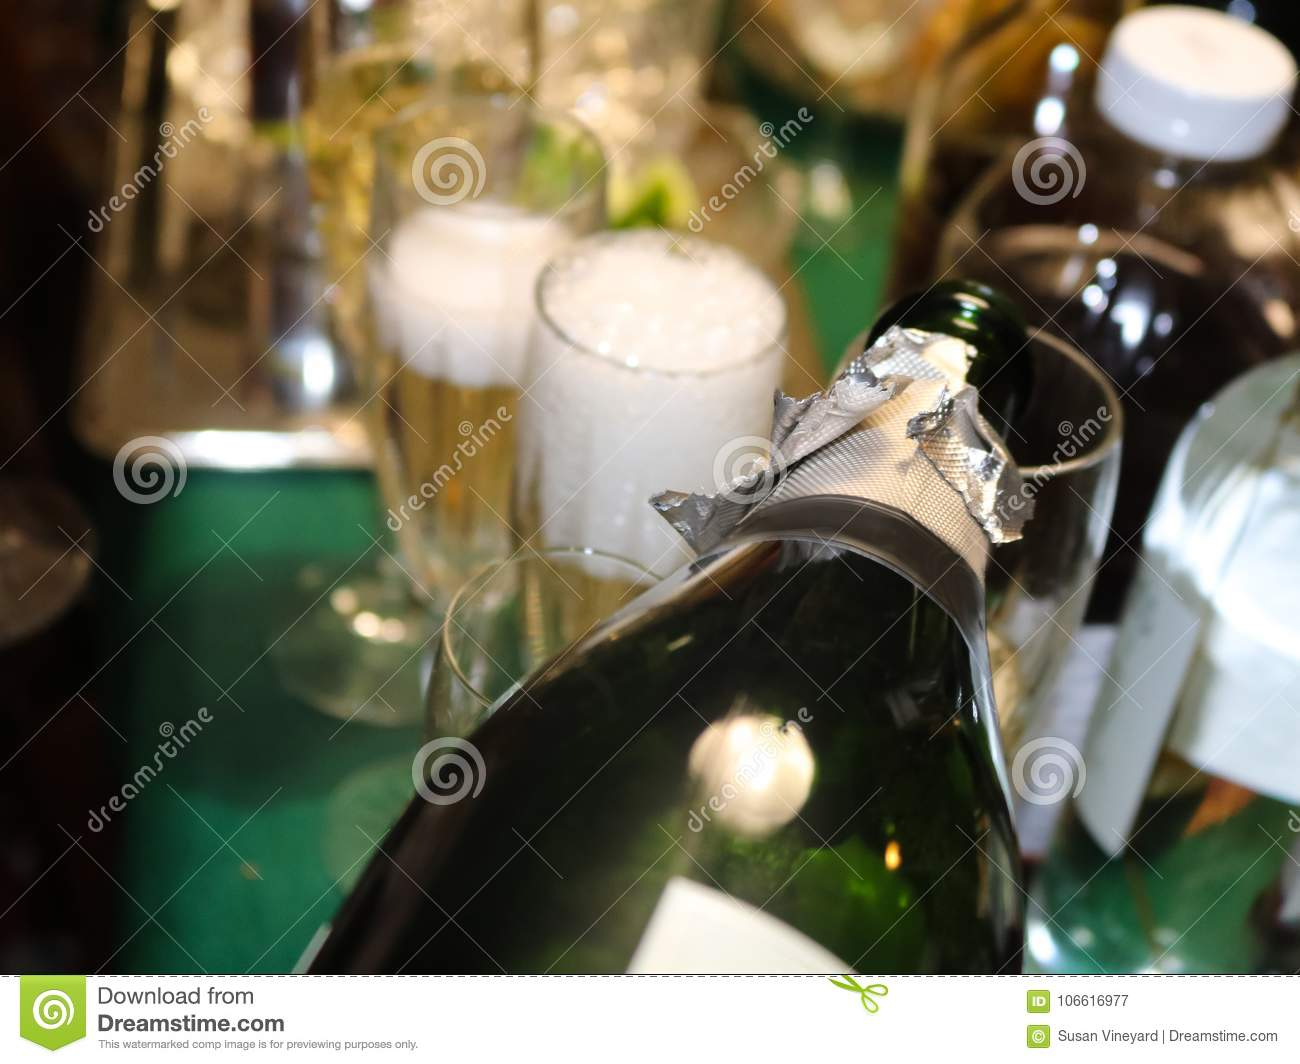 Bubbles coming off poured champagne in a foamy glass with surrounding bottle shapes and more champagne being poured